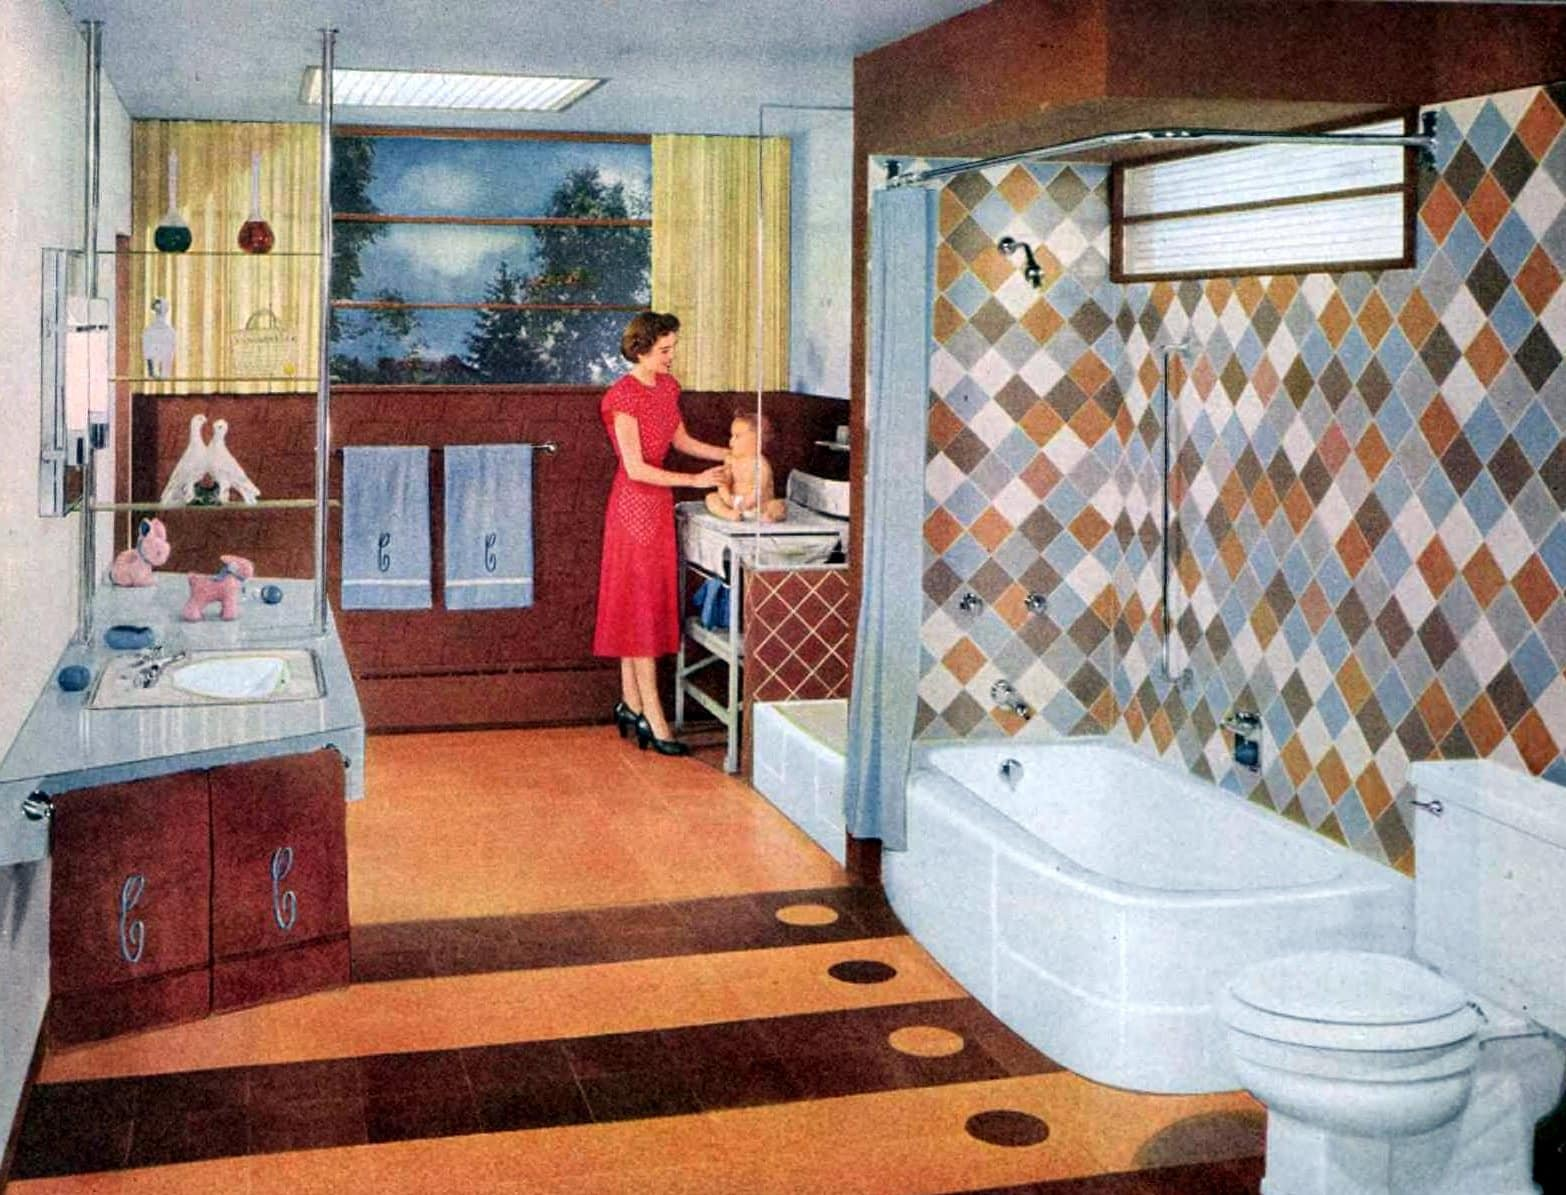 Old-fashioned brown, tan and gray bathroom decor (1953)